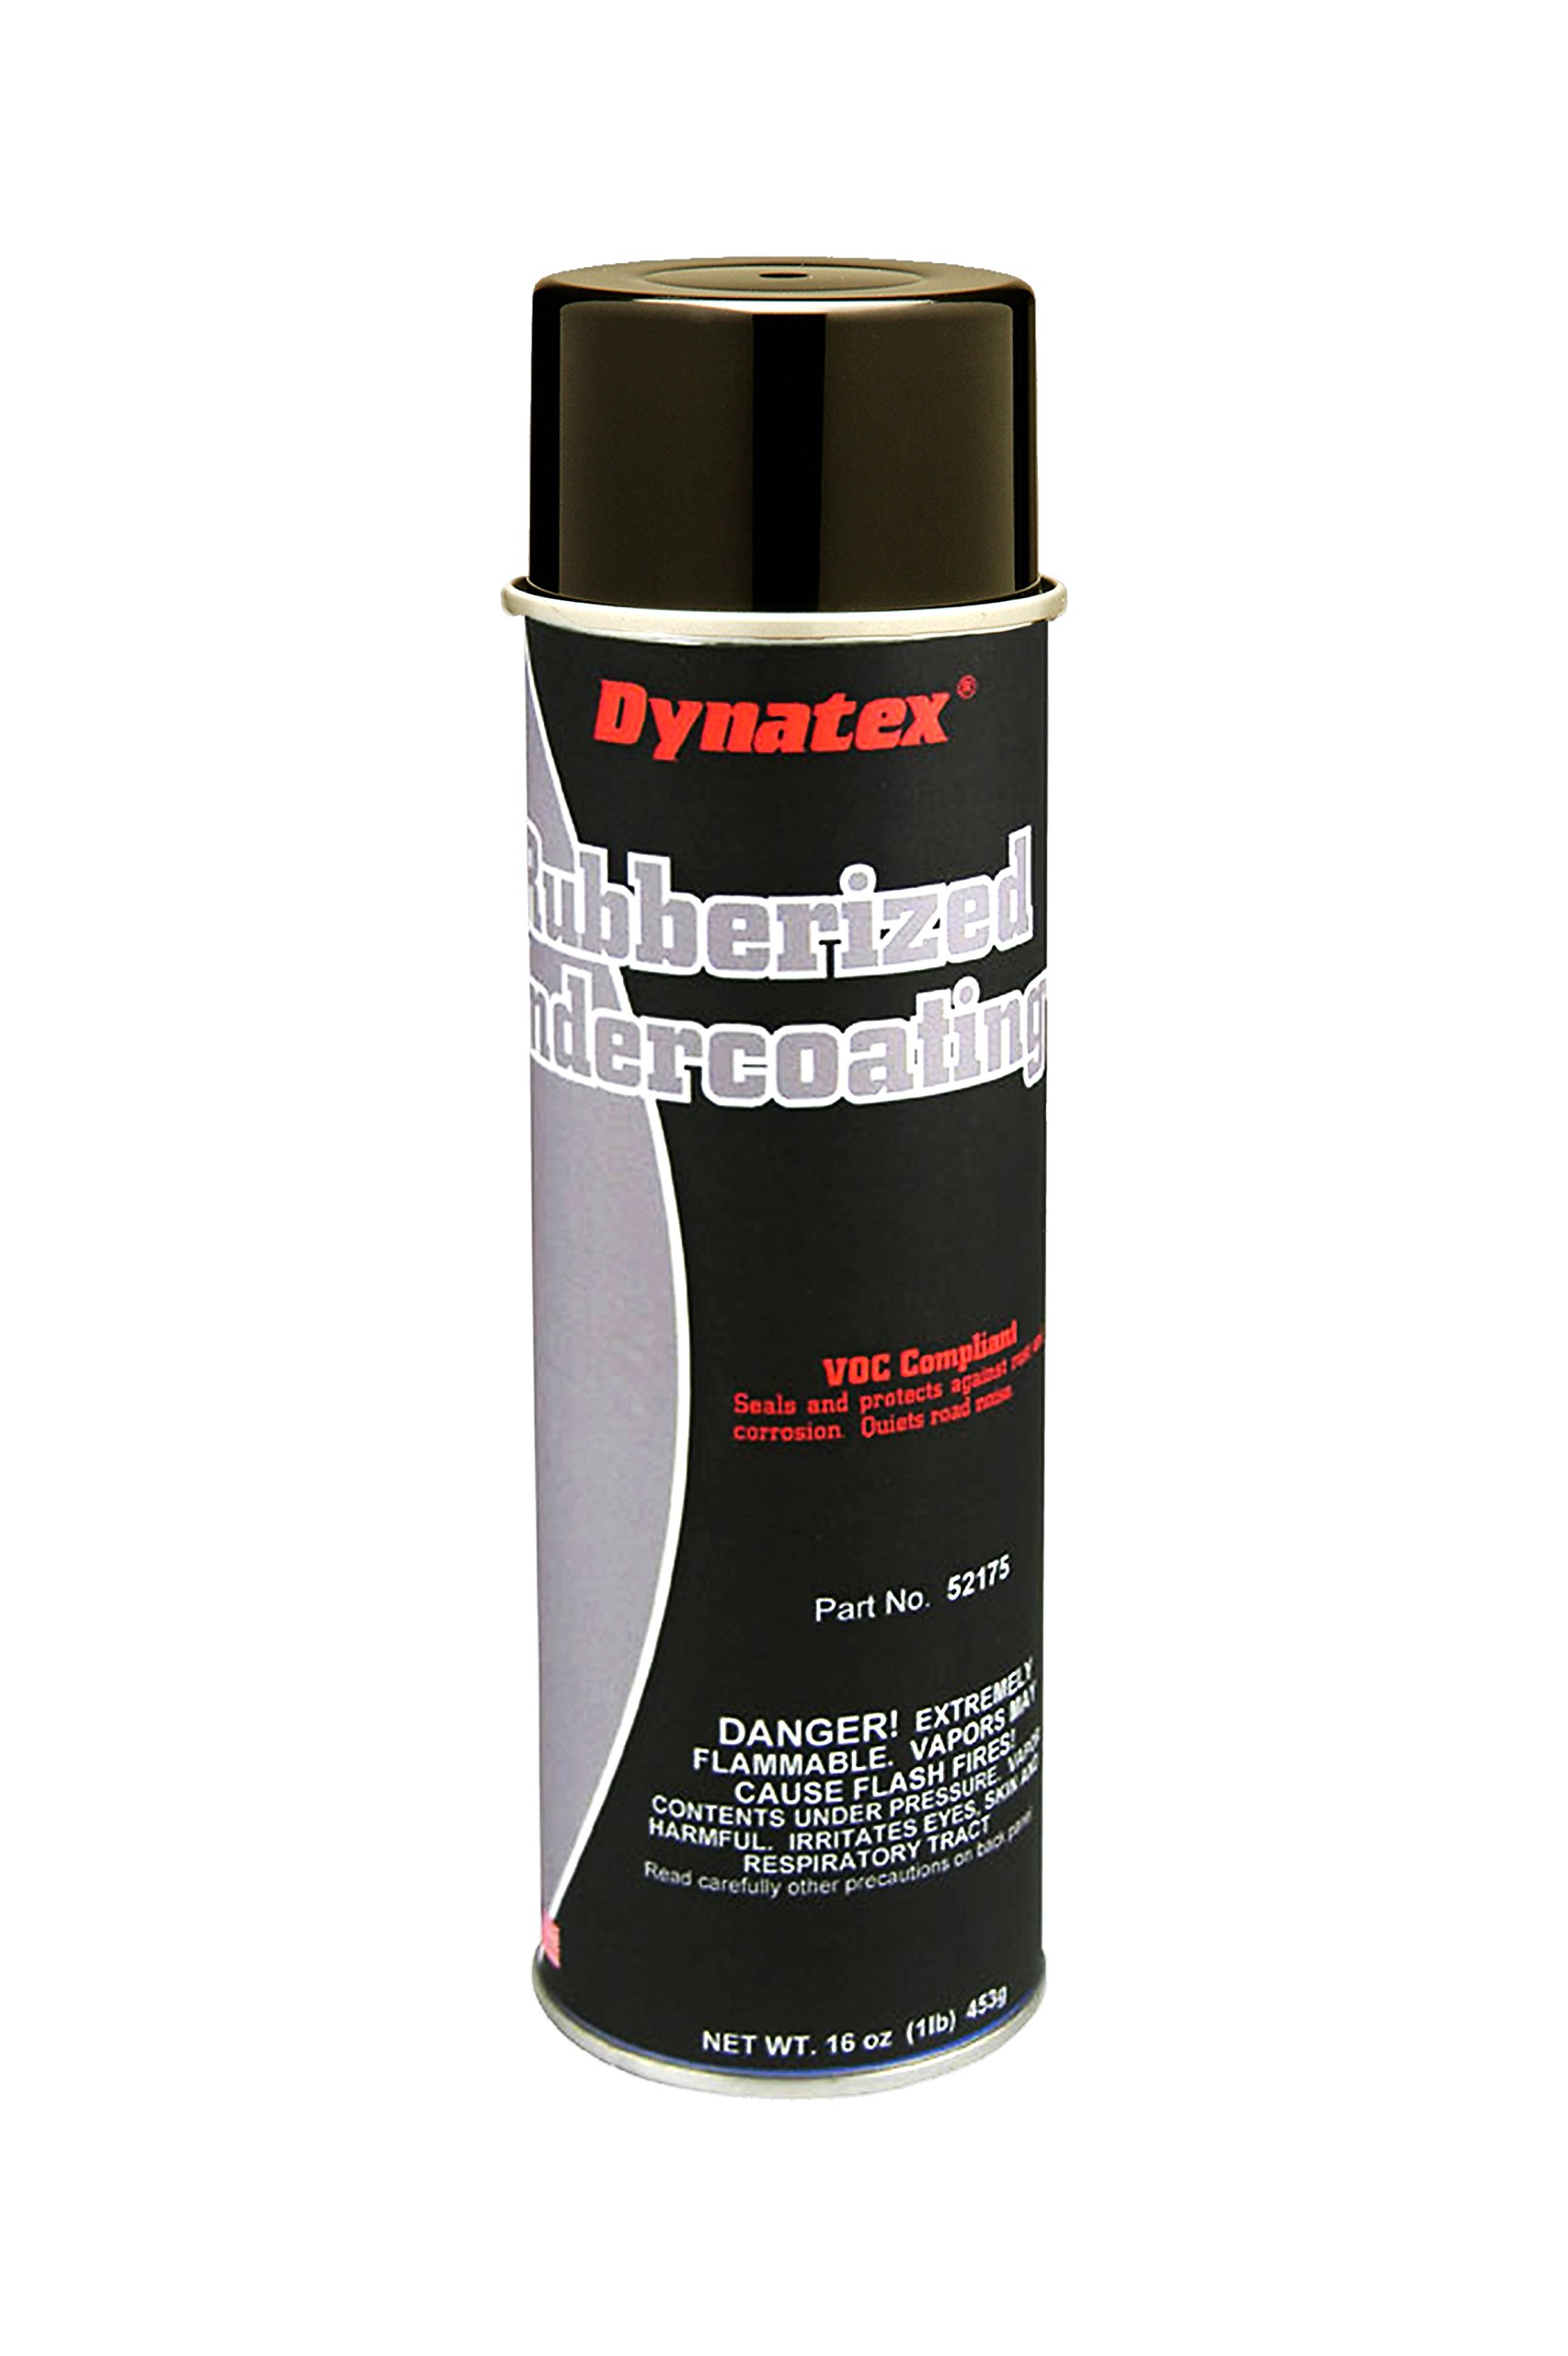 Buy Dynatex 52175 Rubberized Undercoating Spray, 20 oz